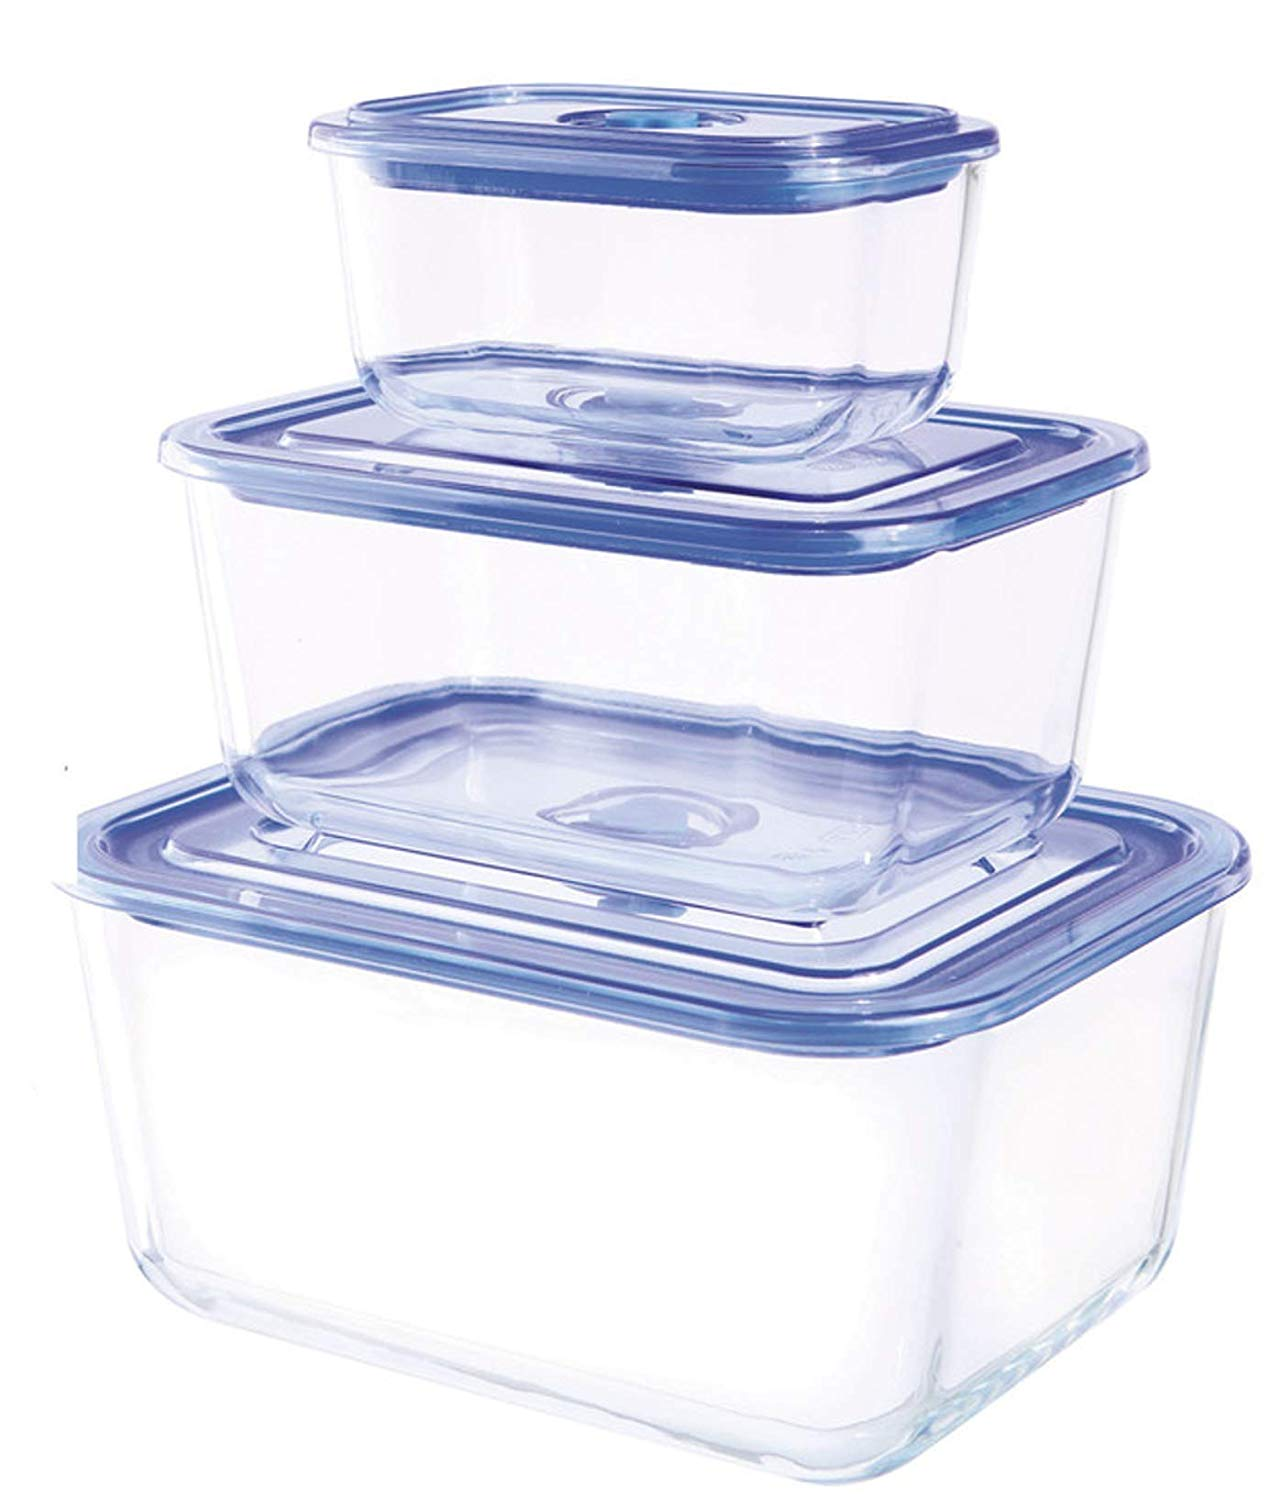 Genial 10 Piece Premier Rectangular Food Storage Containers With ...